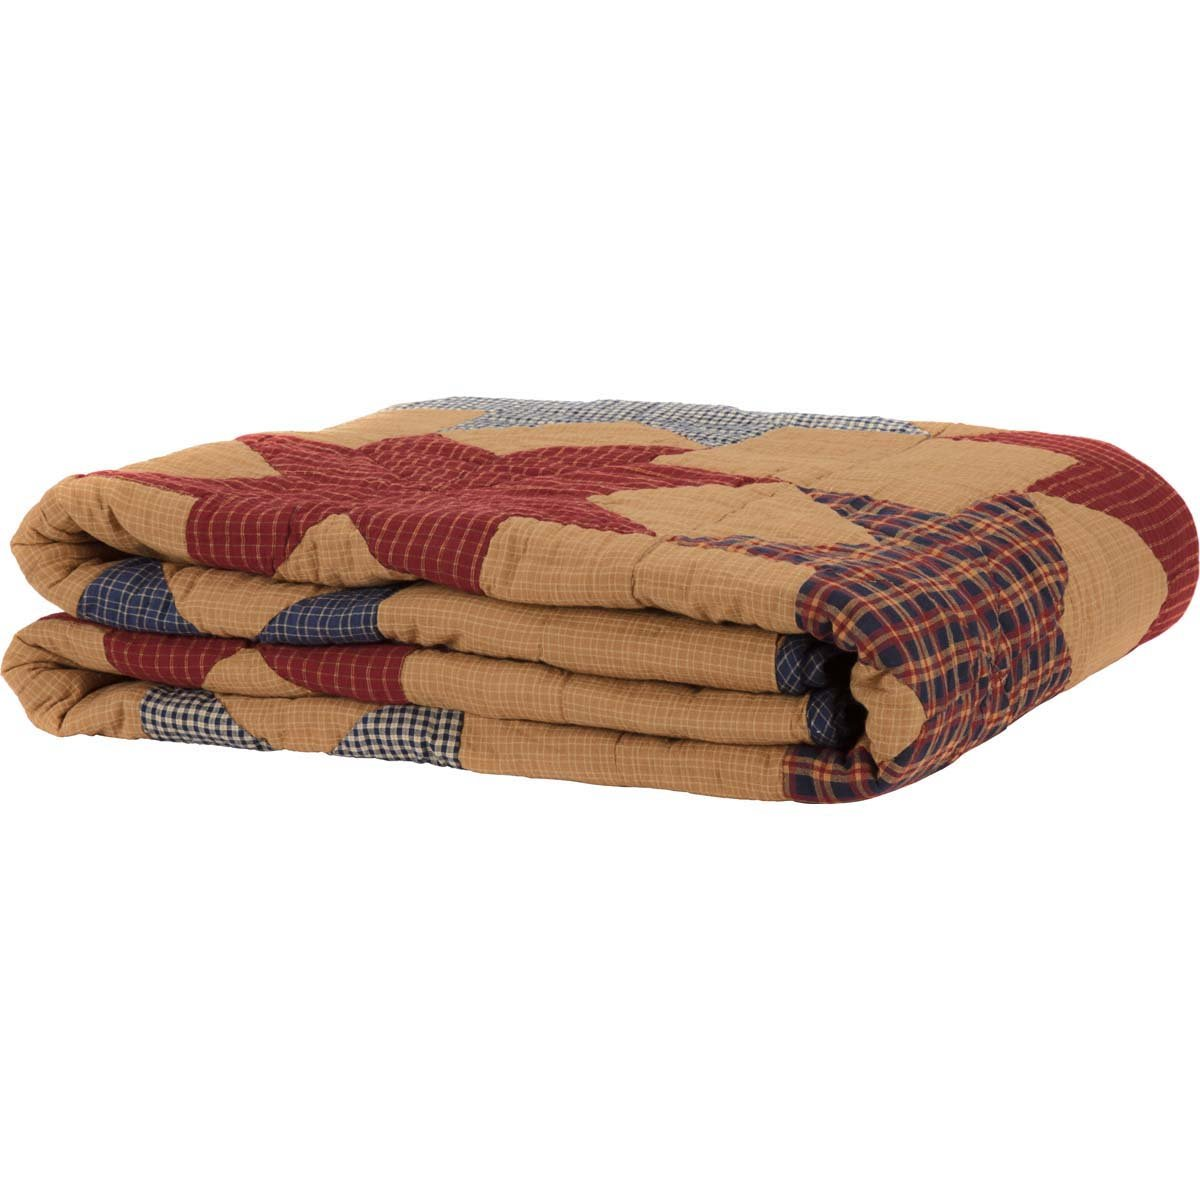 King 40496 VHC Brands Classic Country Primitive Bedding-Kindred Star Tan Quilt